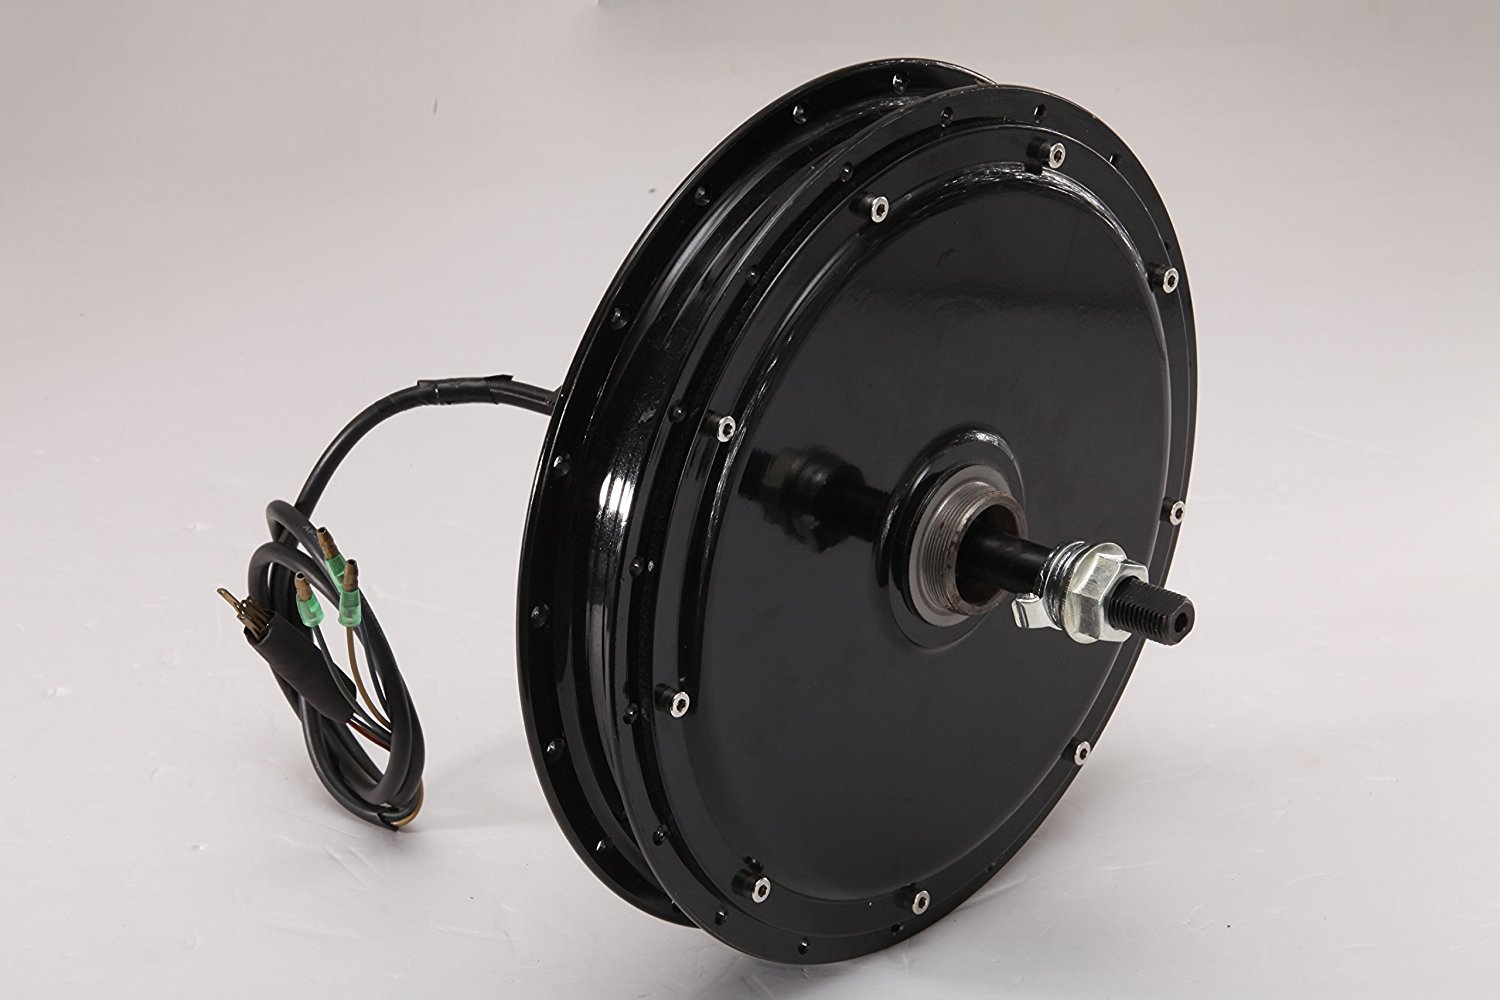 48v 1000w electric bike motor / brushless dc motor e-bike / e-bike hub motor